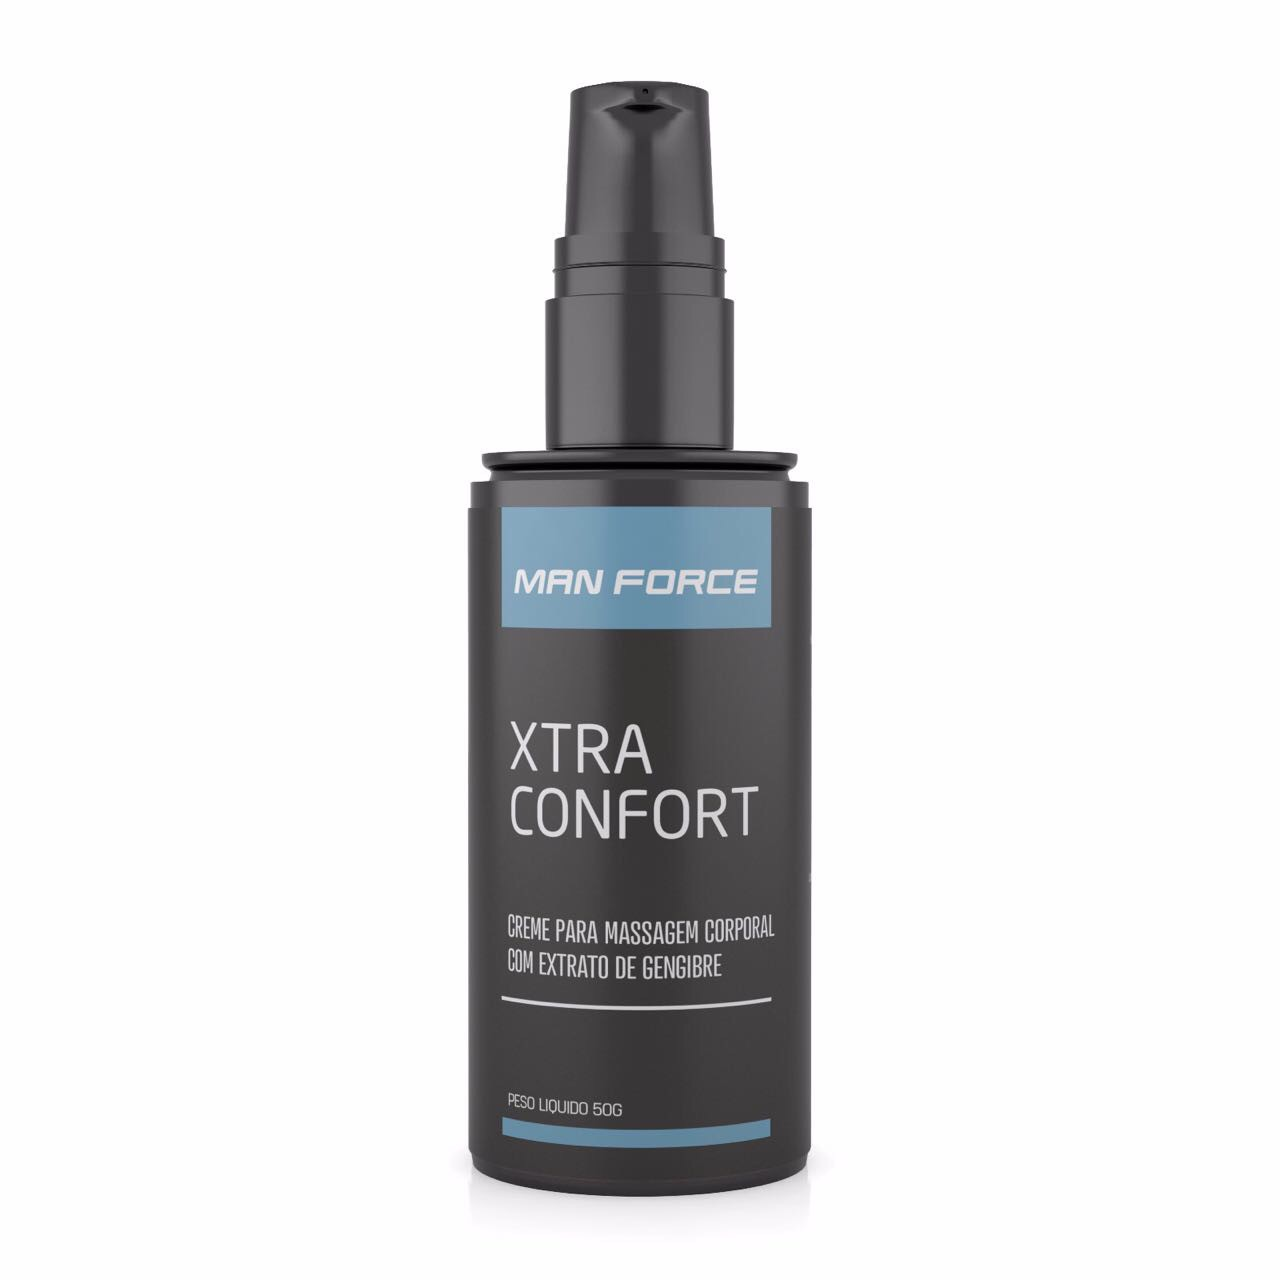 Man Force Xtra Confort